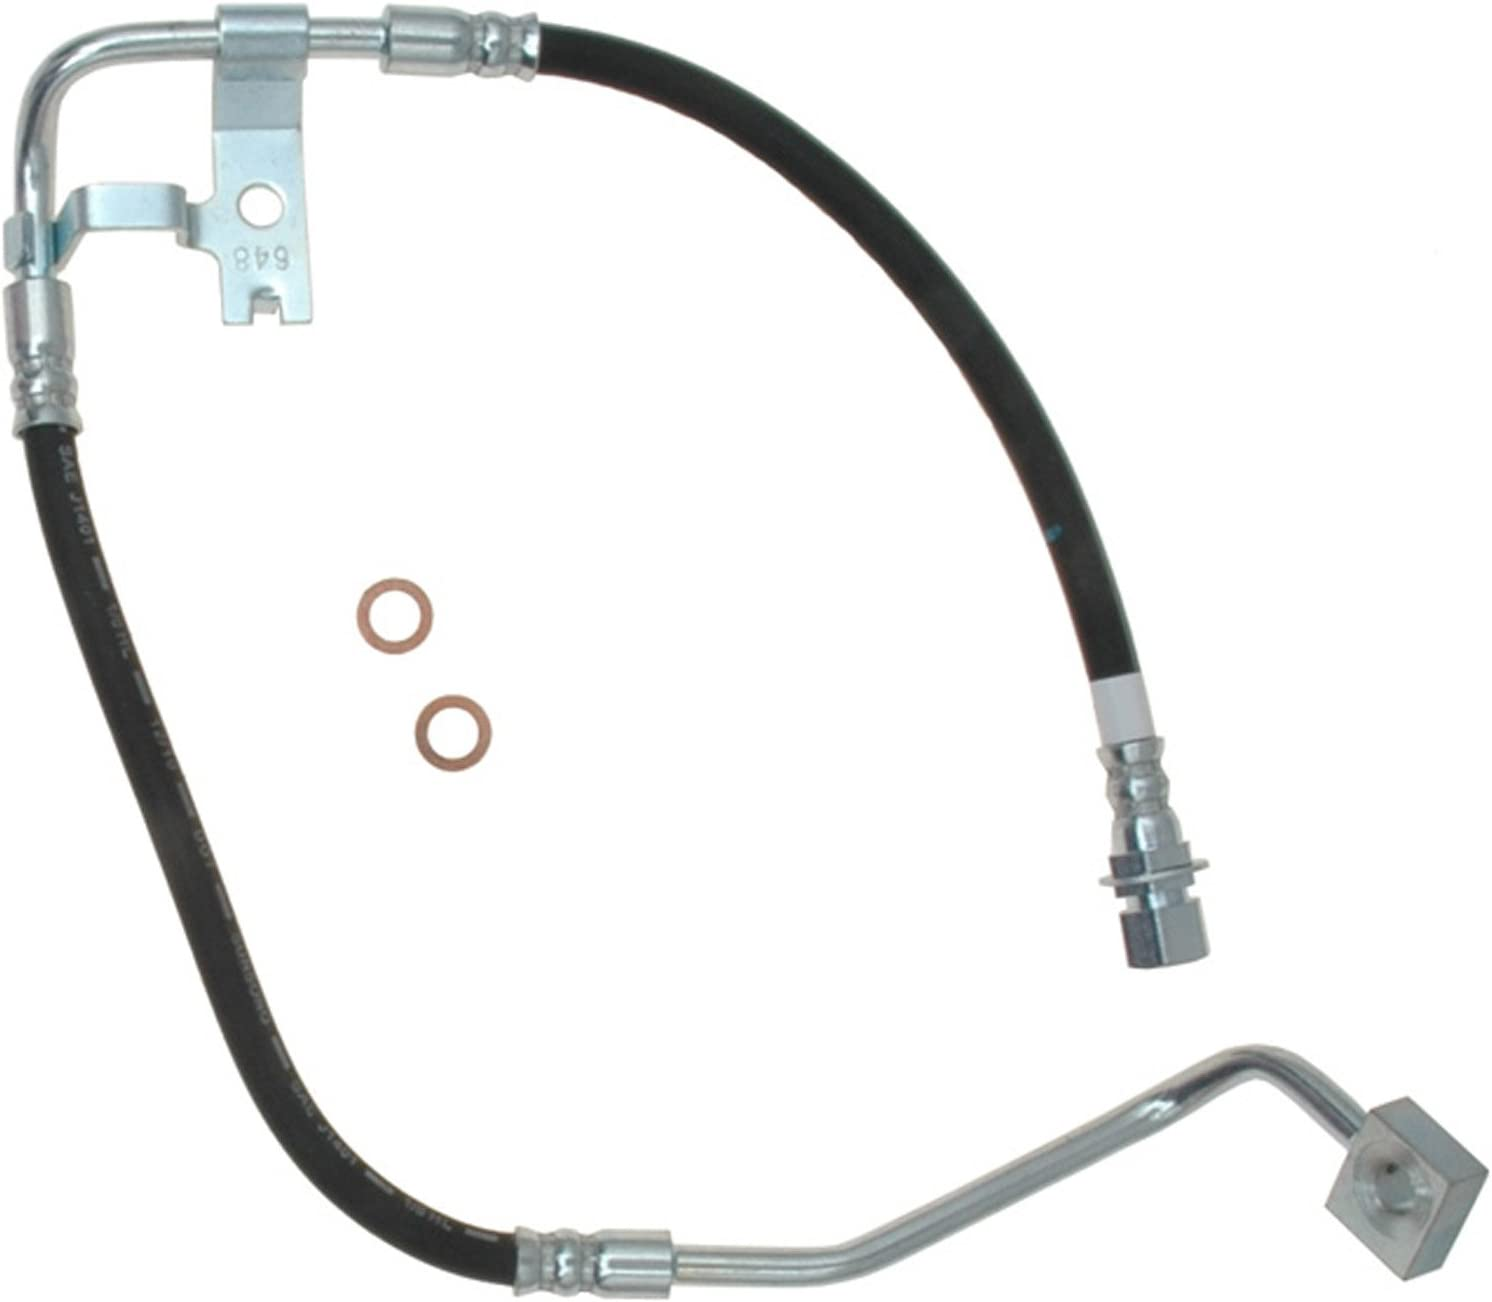 Max 48% OFF ACDelco Ranking integrated 1st place Professional 18J4520 Front Driver Hydraulic Brake Side H